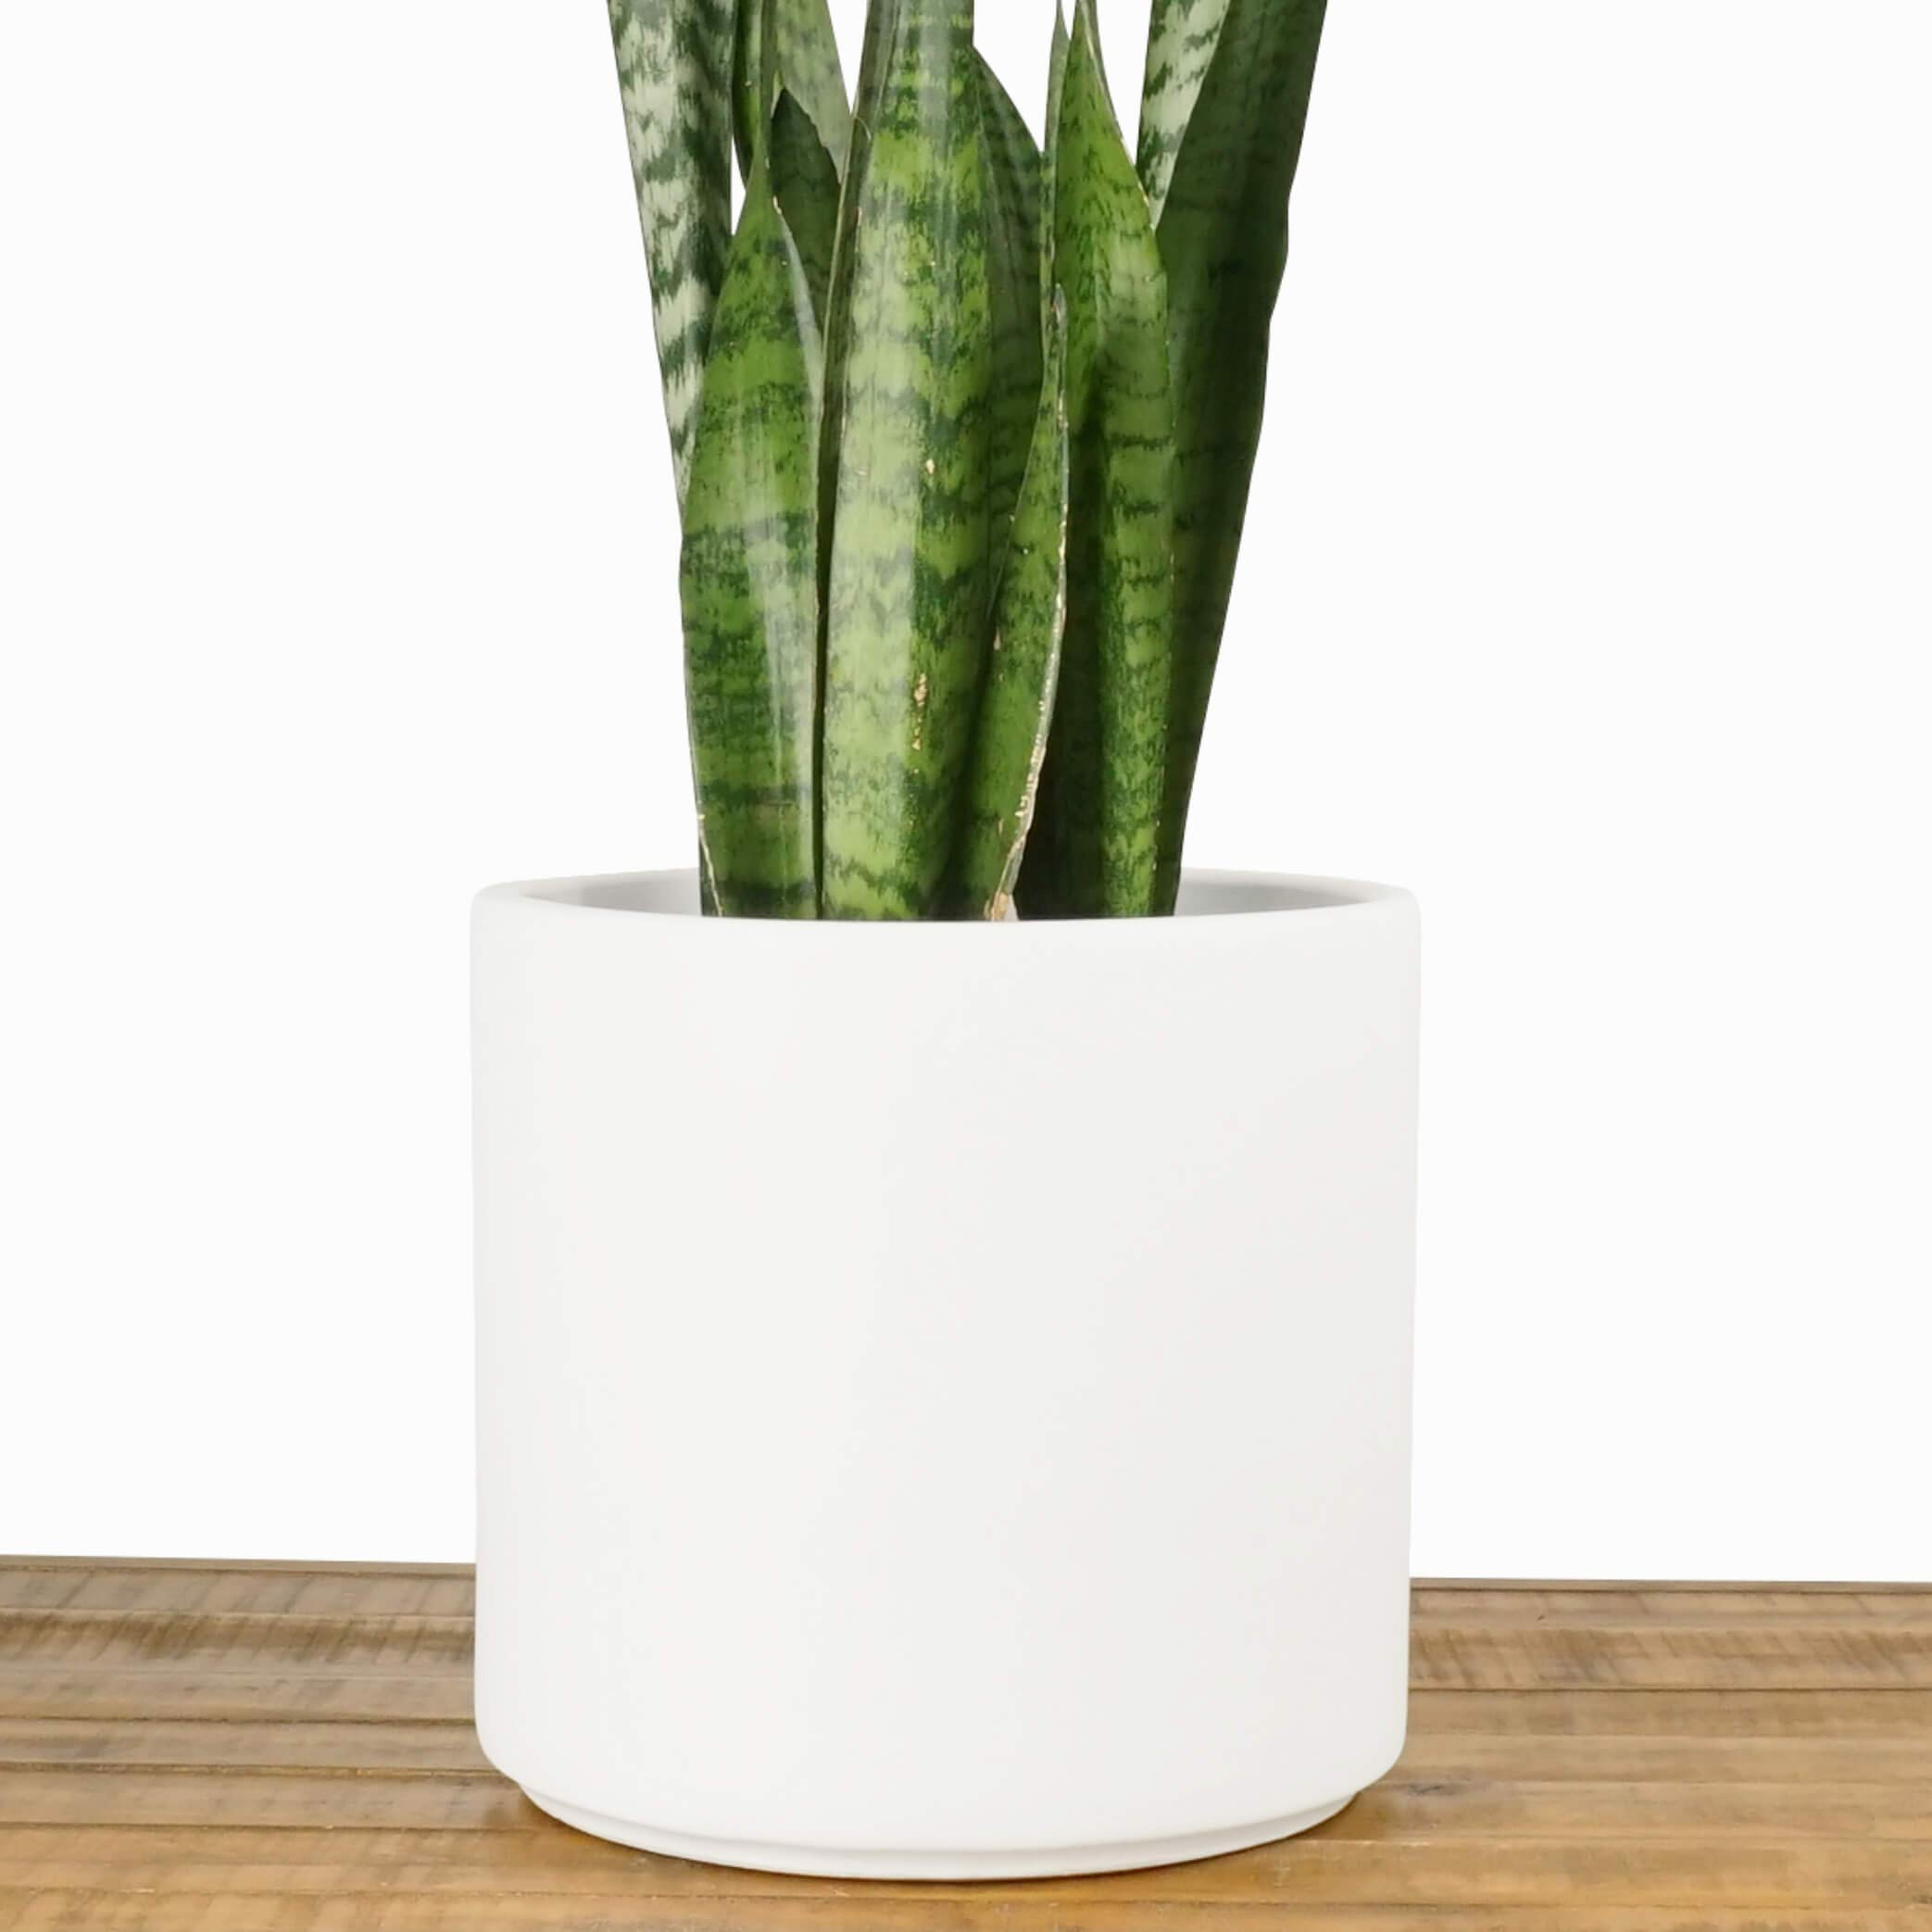 Indoor Flower Pot | Large Modern Planter, Terracotta Ceramic Plant Pot - Plant Container Great for Plant Stands (8.5 inch, White)